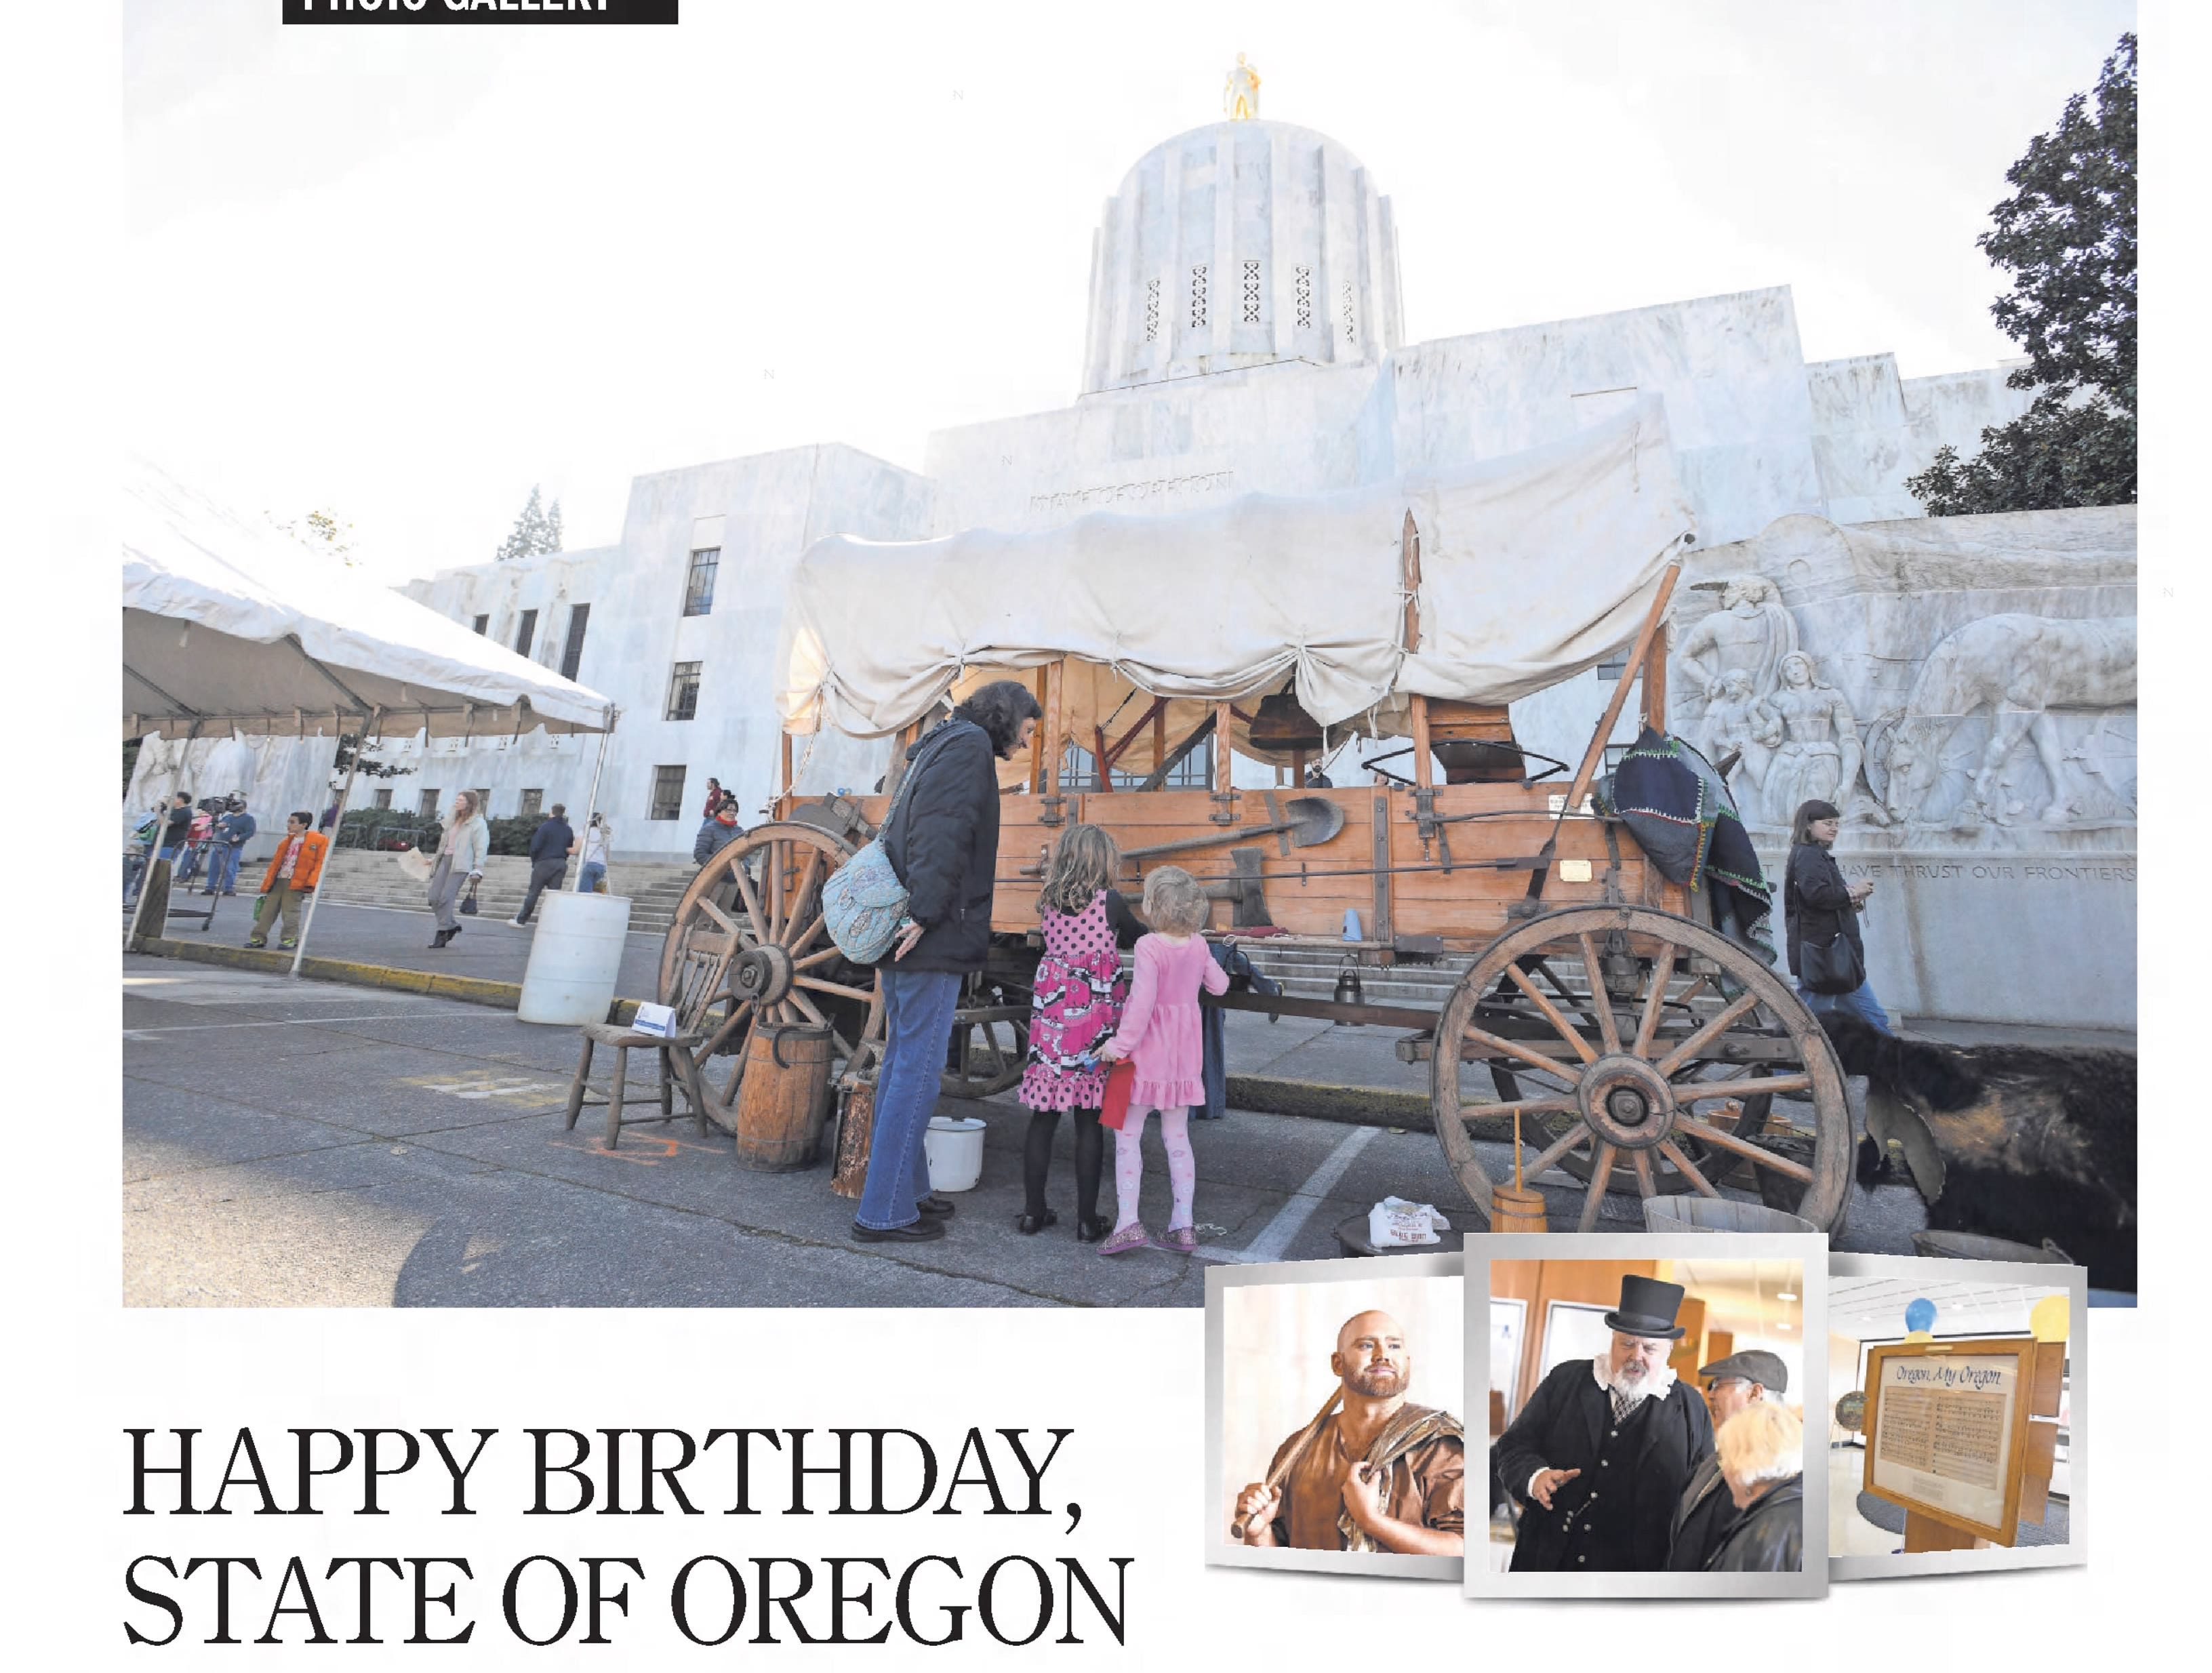 A clip from the Feb. 16, 2015 Statesman Journal after Oregon's 156th birthday celebration.